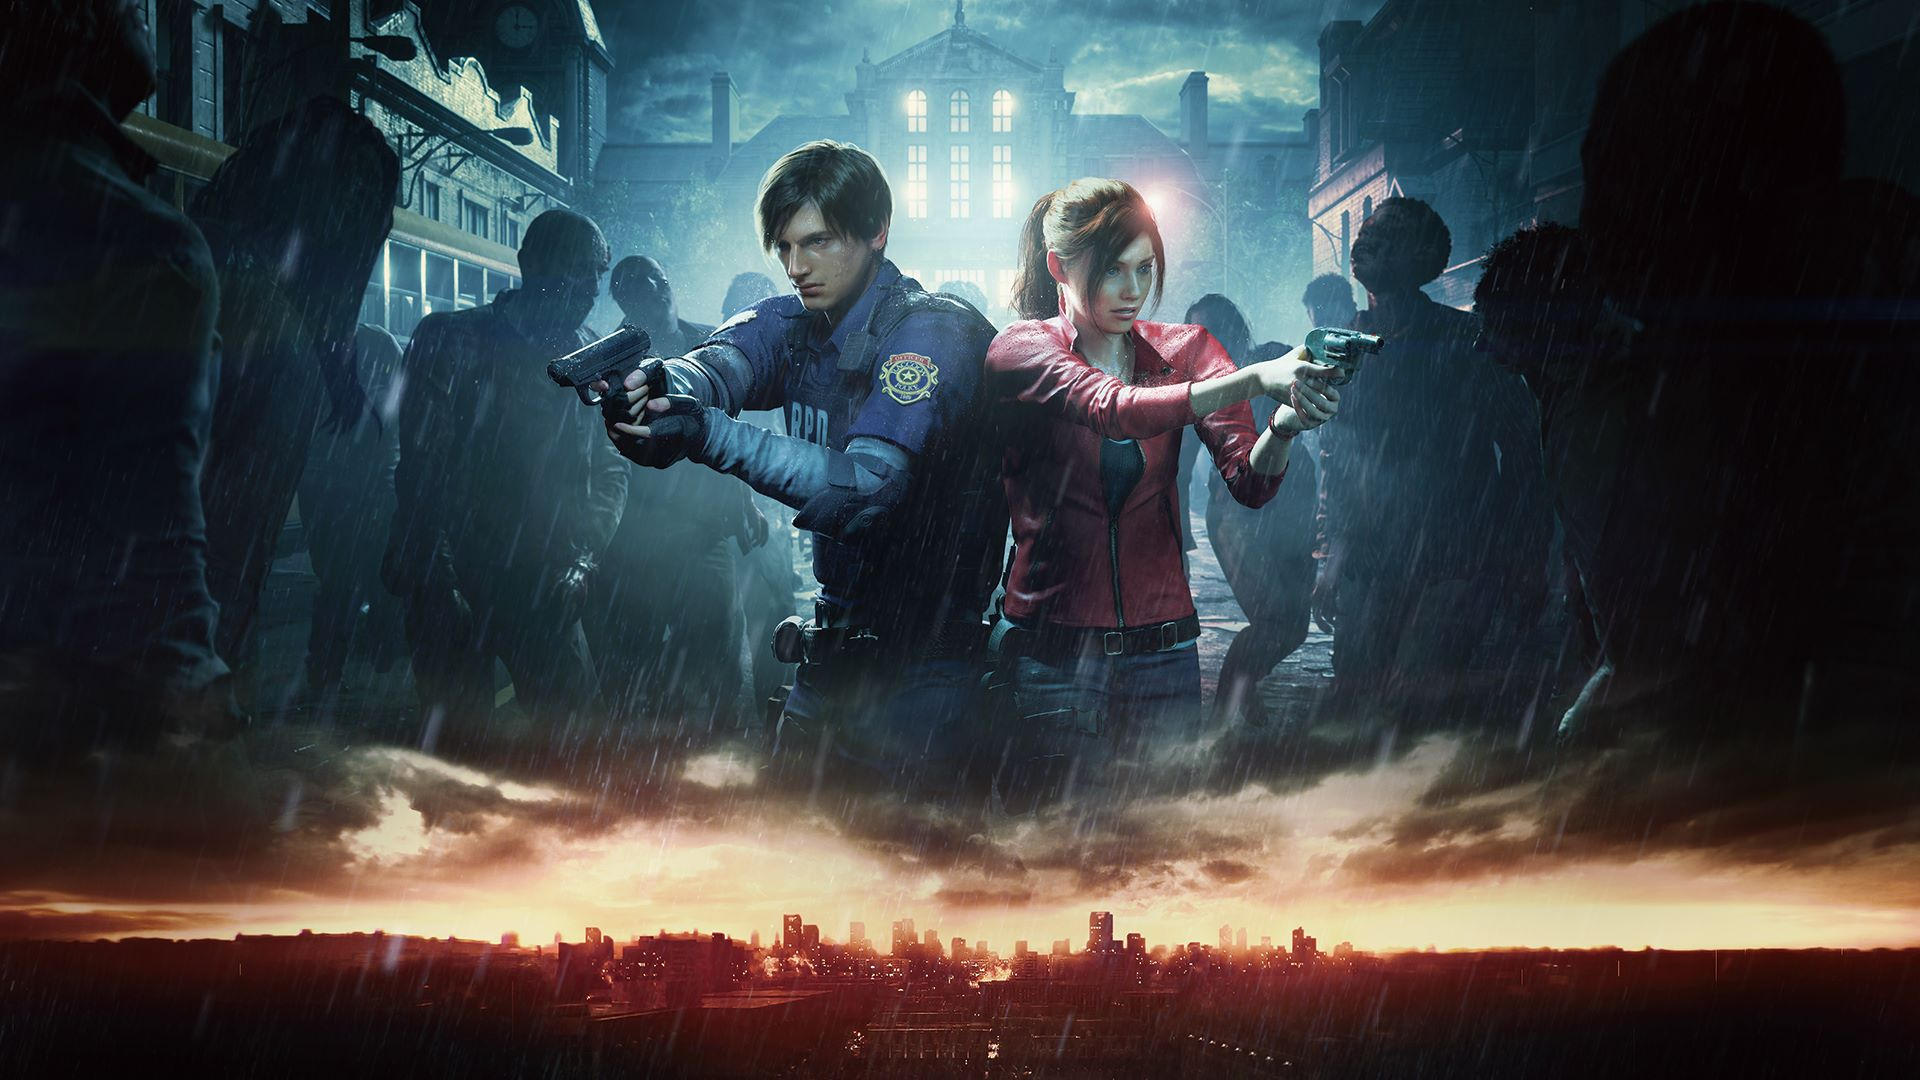 Resident Evil 2 Is On Track To Become The Best Selling Game In The Series